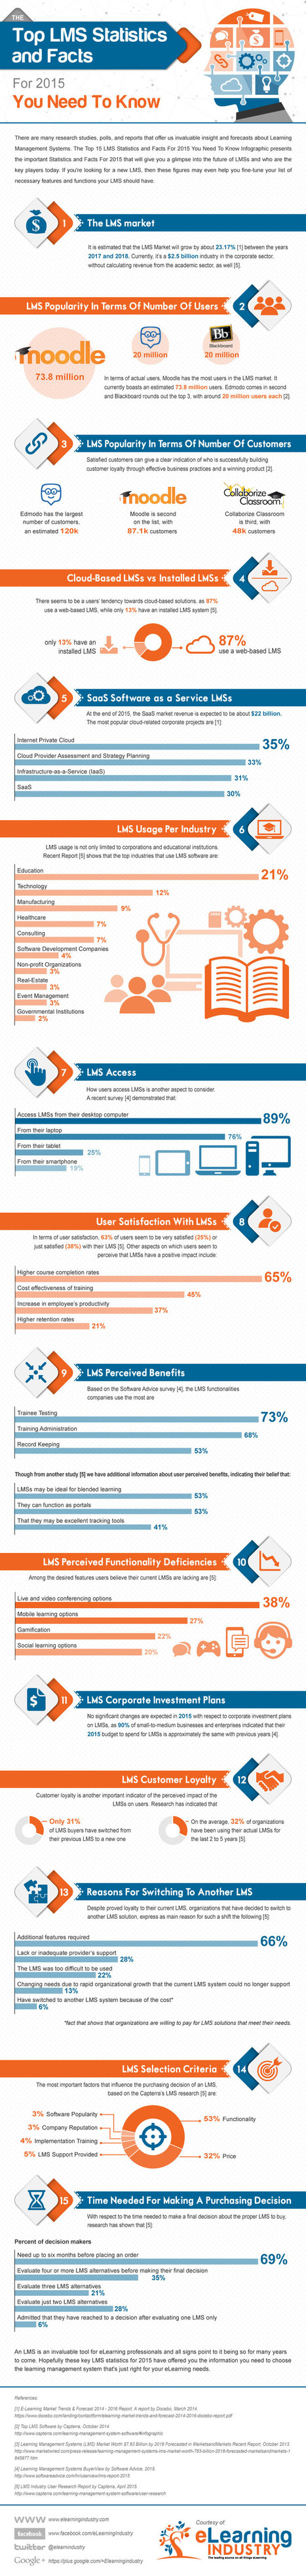 Top LMS Stats and Facts For 2015 Infographic You Need To Know | Learning & Mind & Brain | Scoop.it